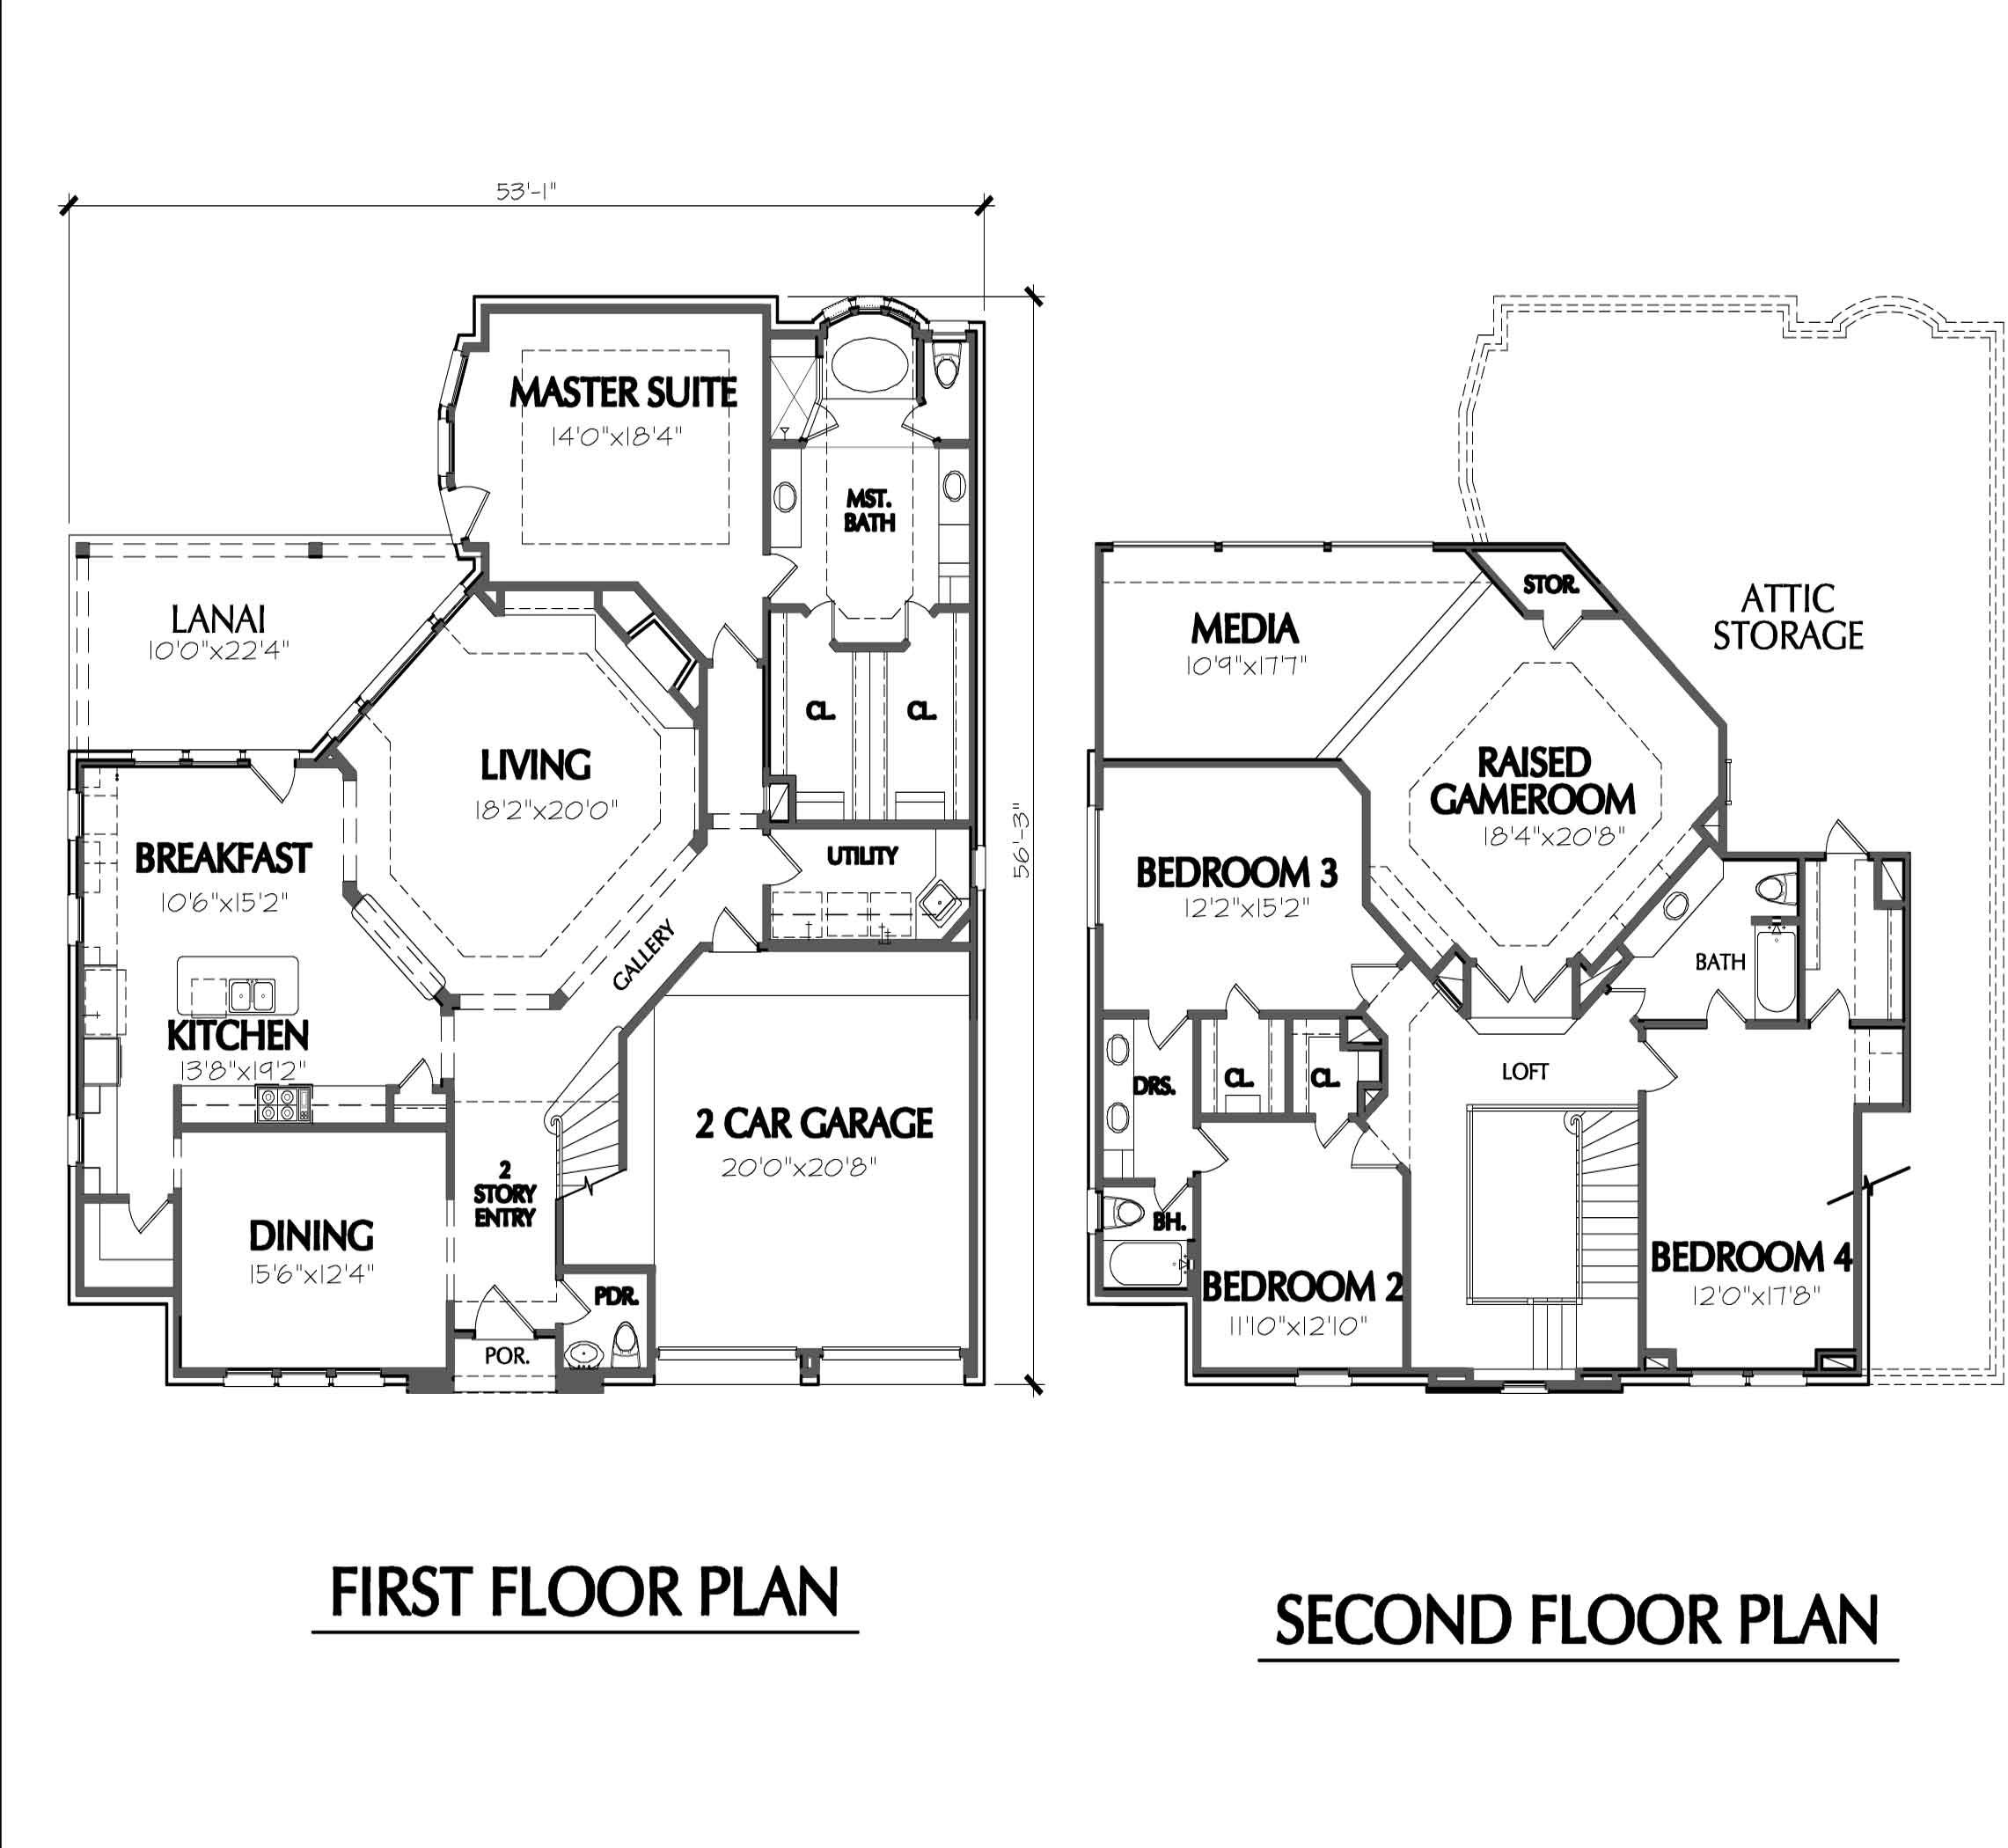 Exceptional House Plans Two Story 4 Two Story House Floor Plans Barndominium Floor Plans Pole Barn House Plans Underground House Plans